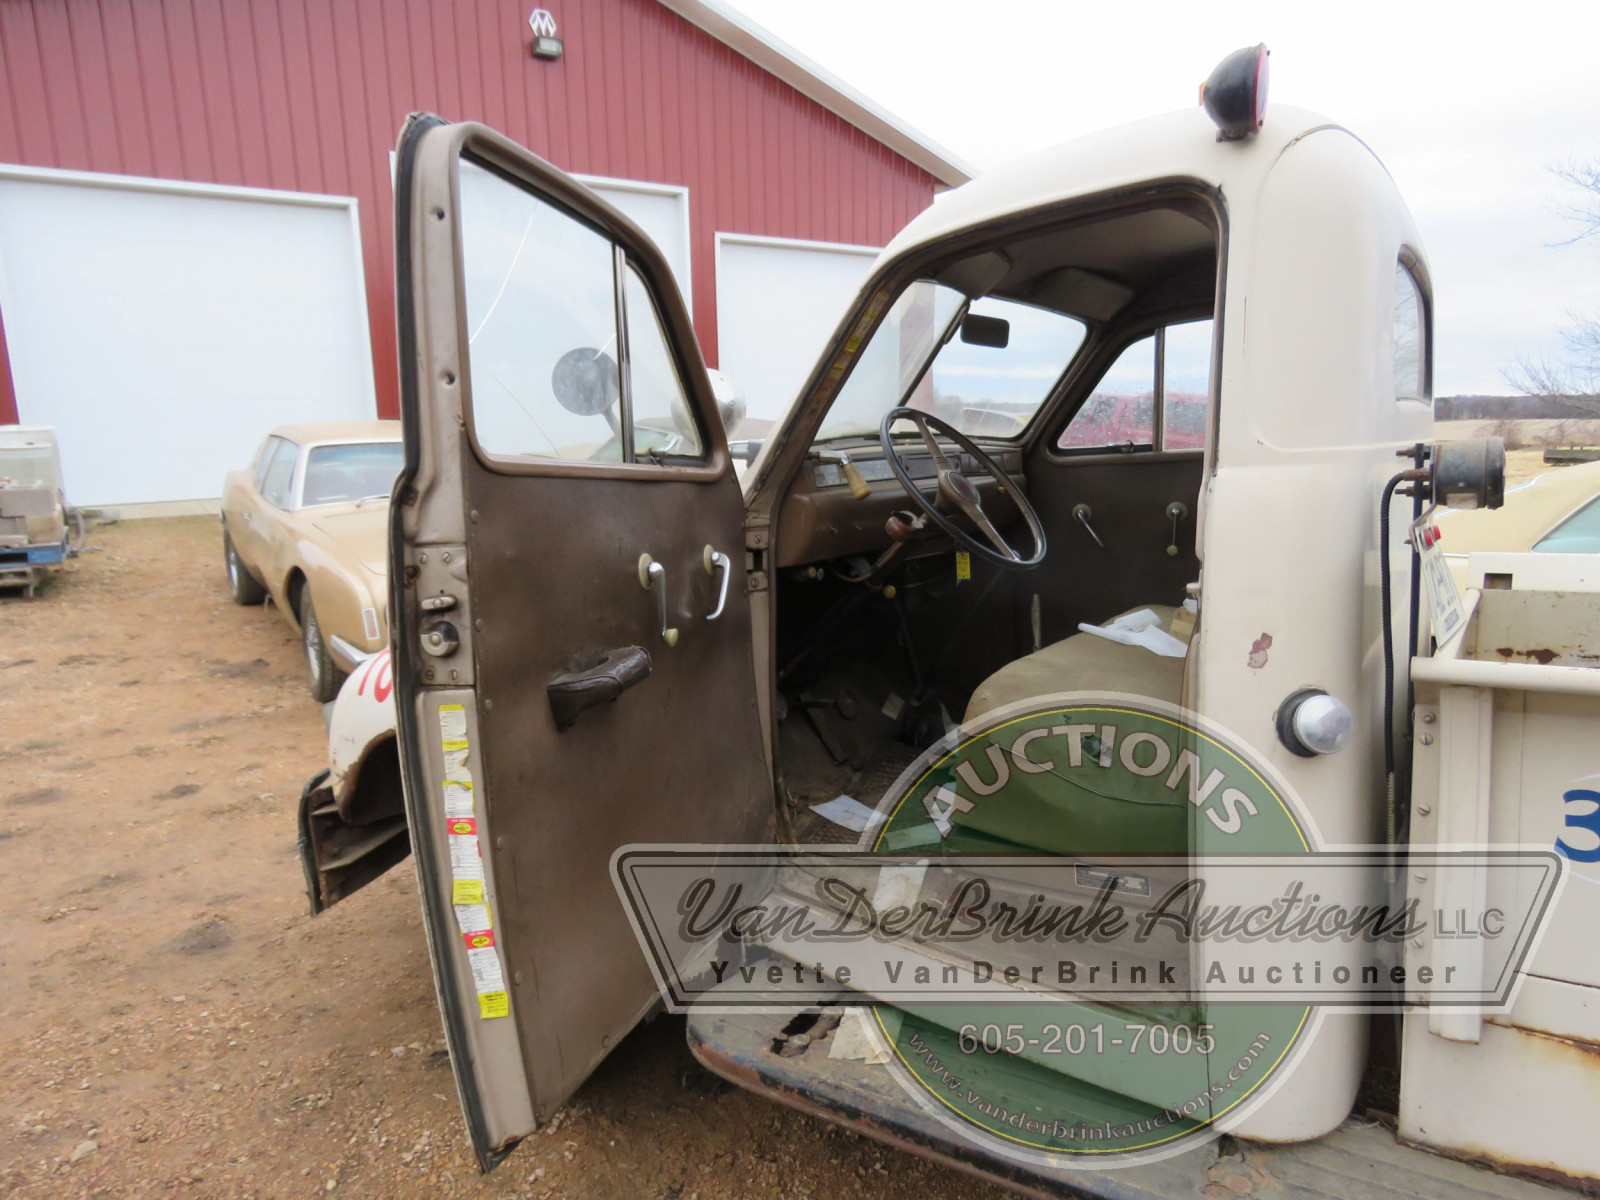 1947 Studebaker Towtruck - Image 8